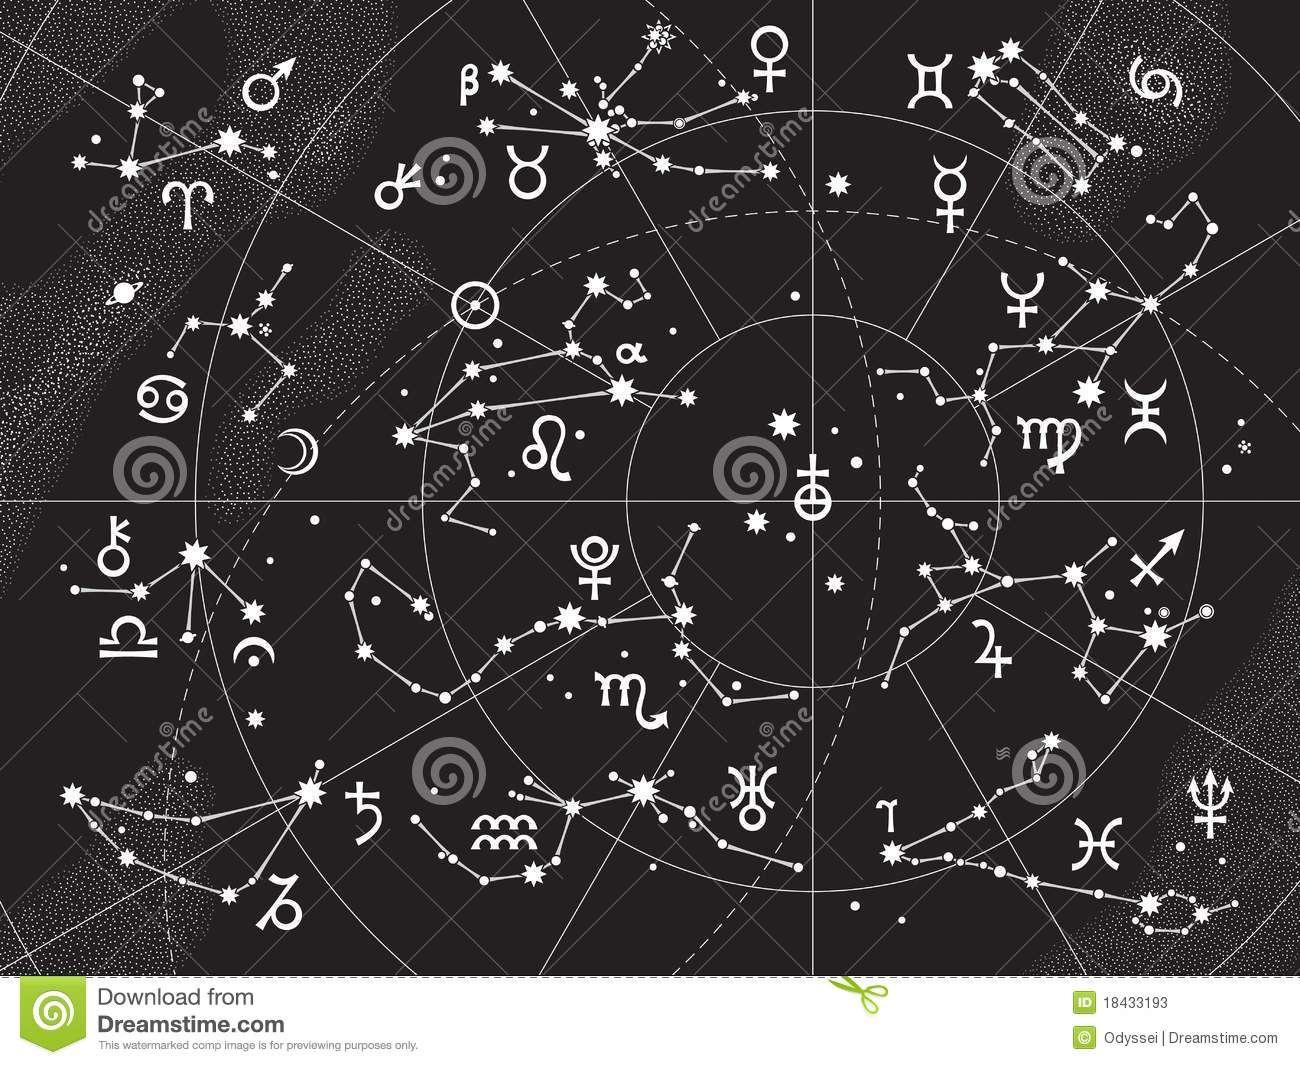 All Constellations Of The Zodiac XII Constellations of Zodiac